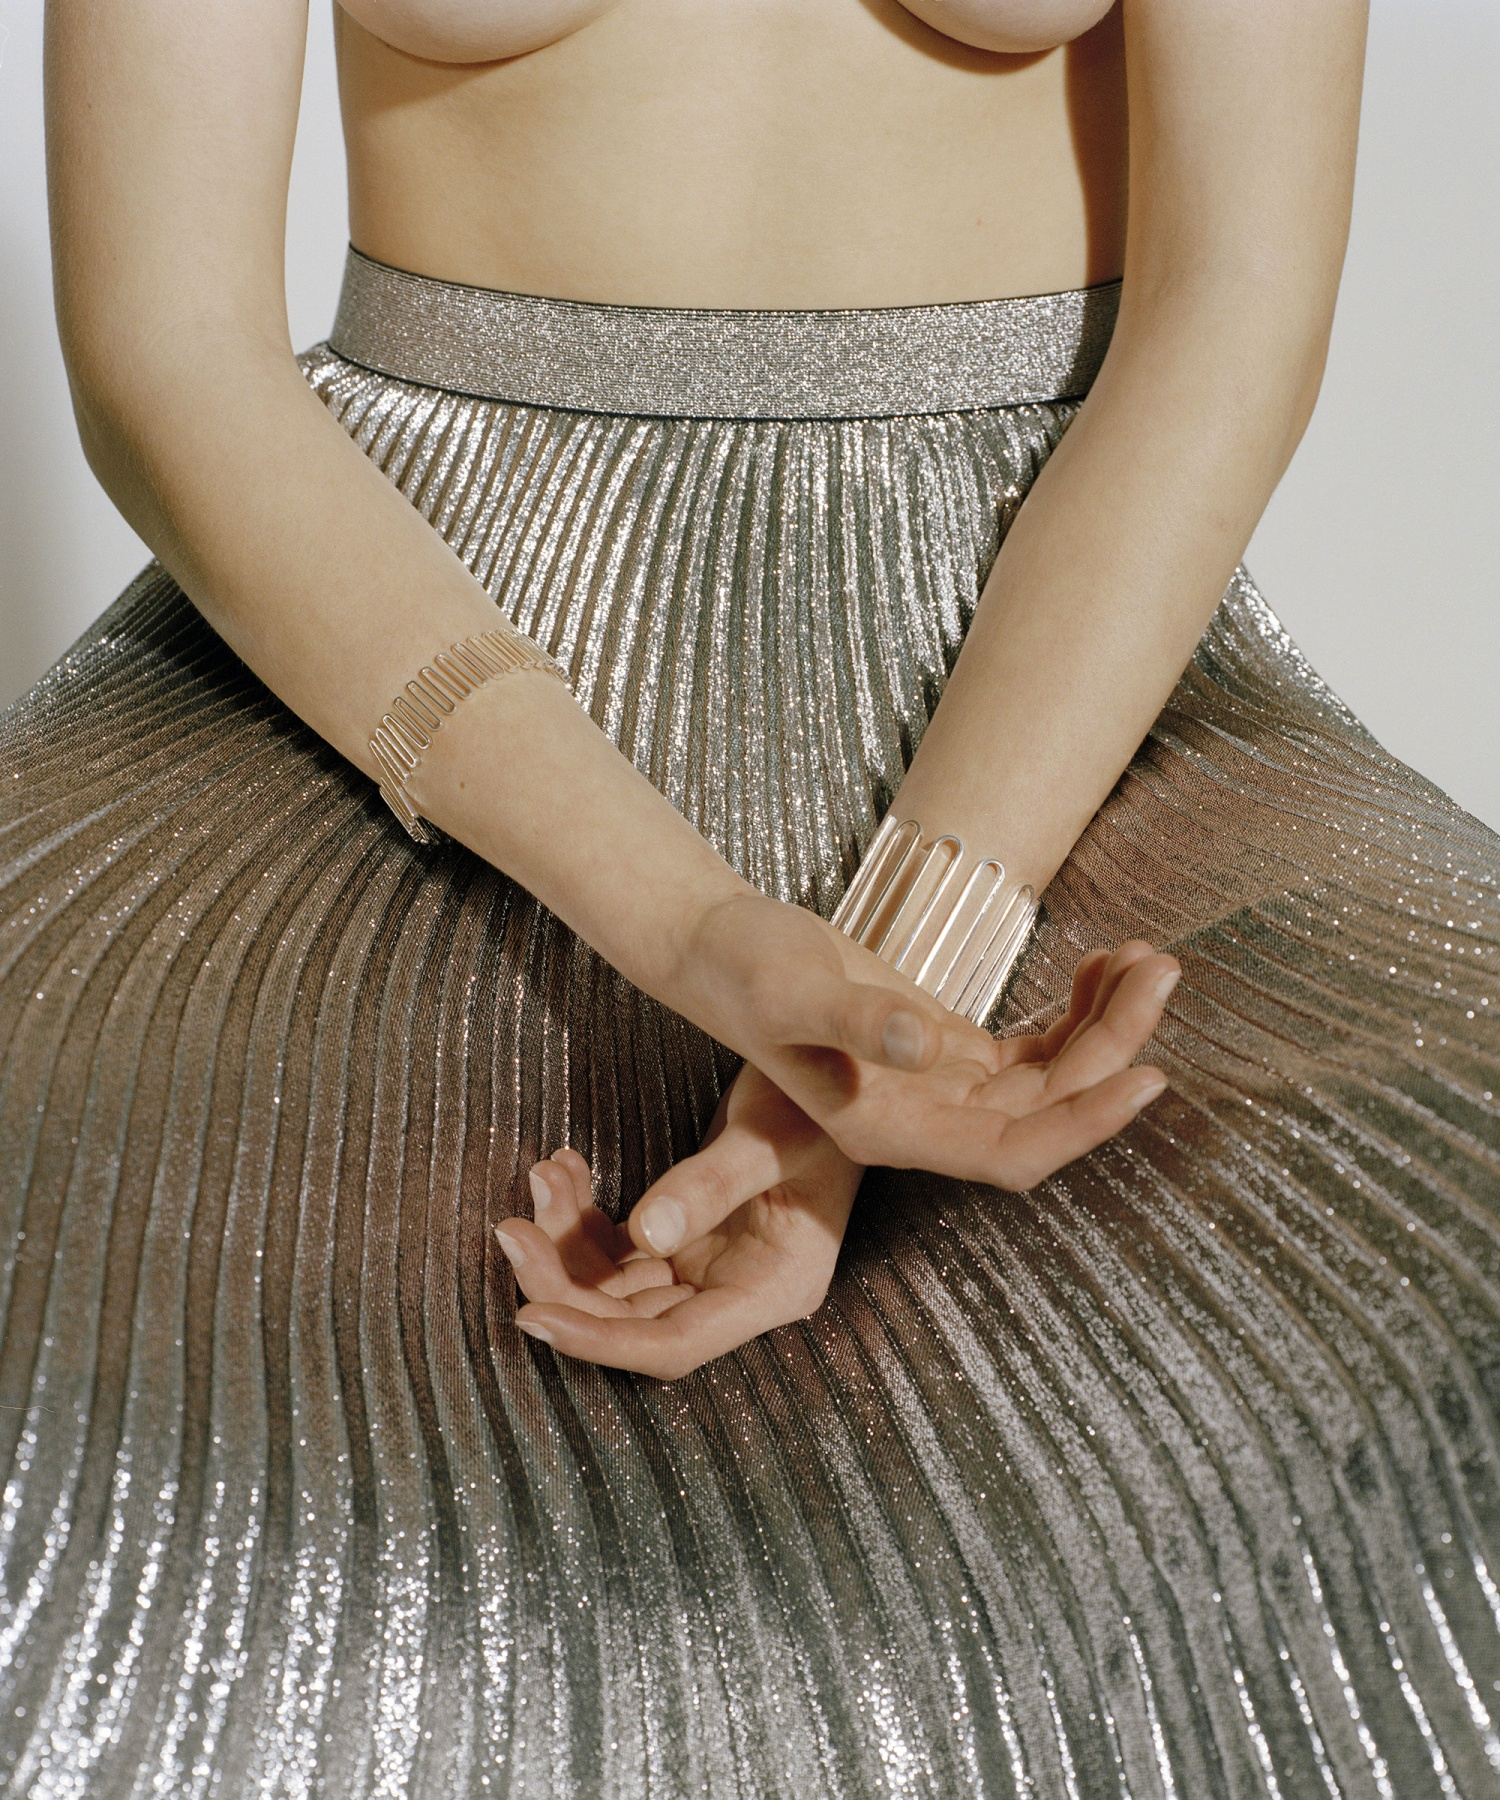 say hi to_ Amelie Riech from Uncommon Matters and the bracelet from the Momentum Flow collection